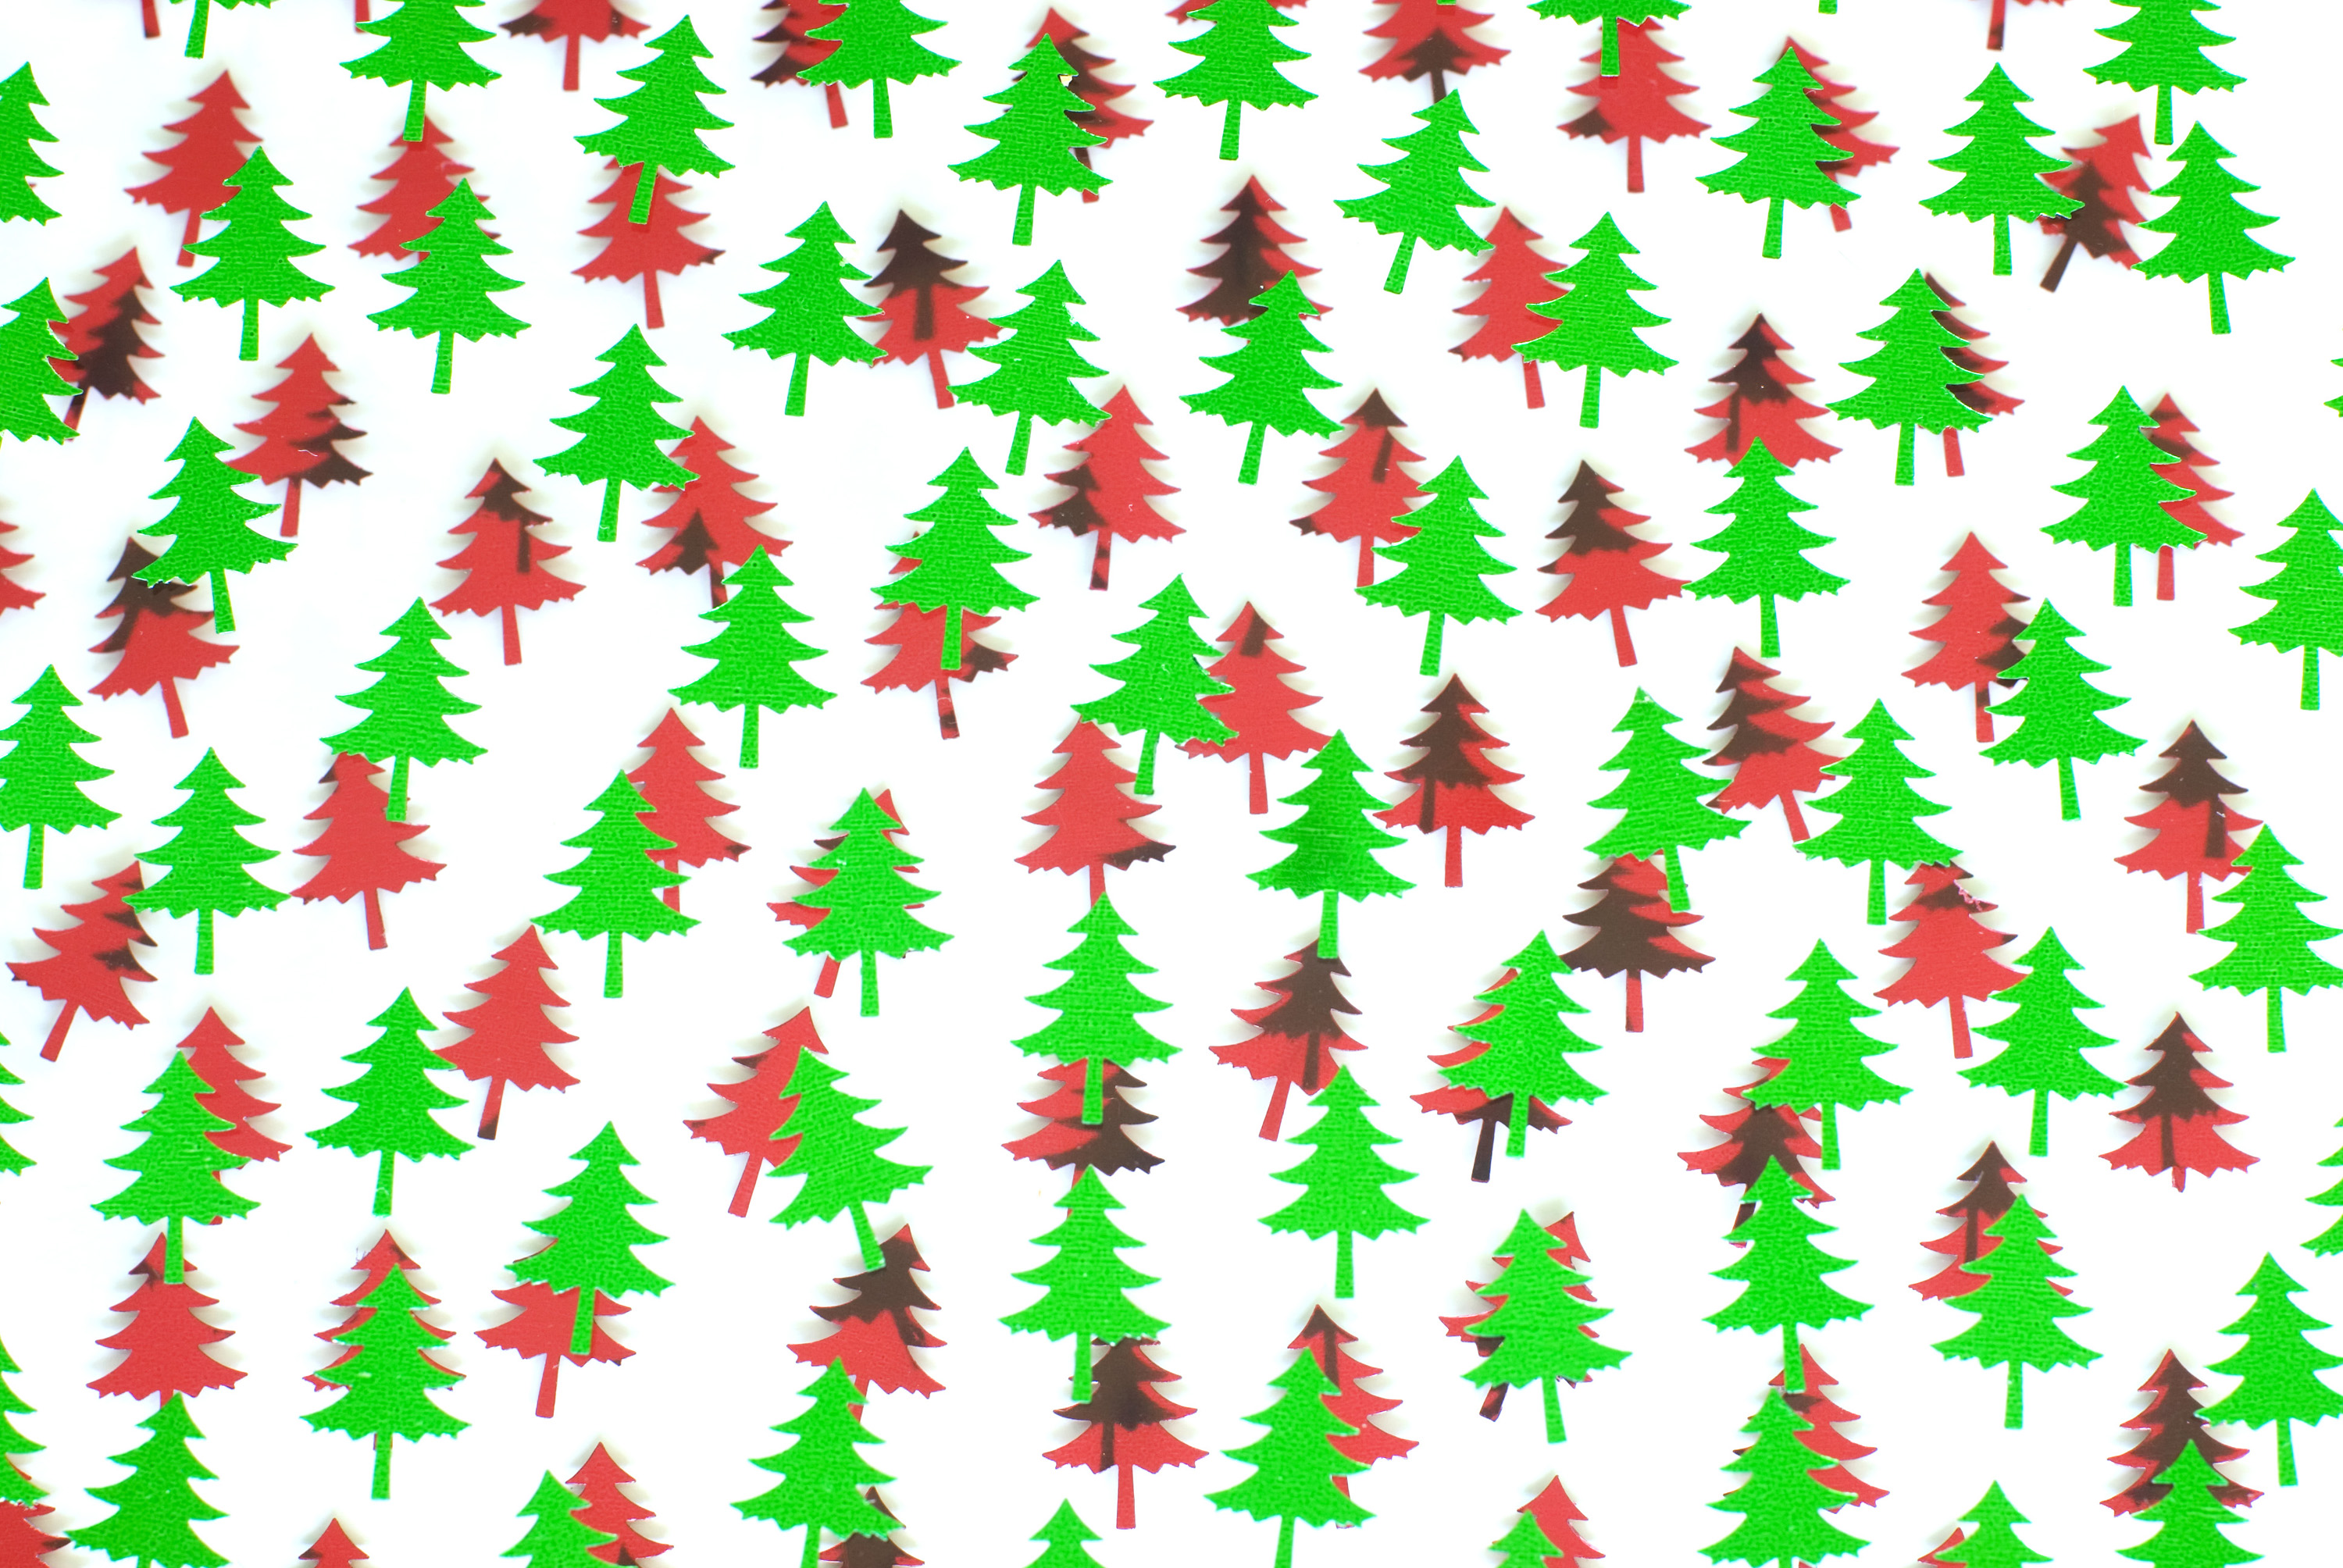 Christmas Green And Red.Free Stock Photo 3632 Red And Green Tree Shapes Freeimageslive